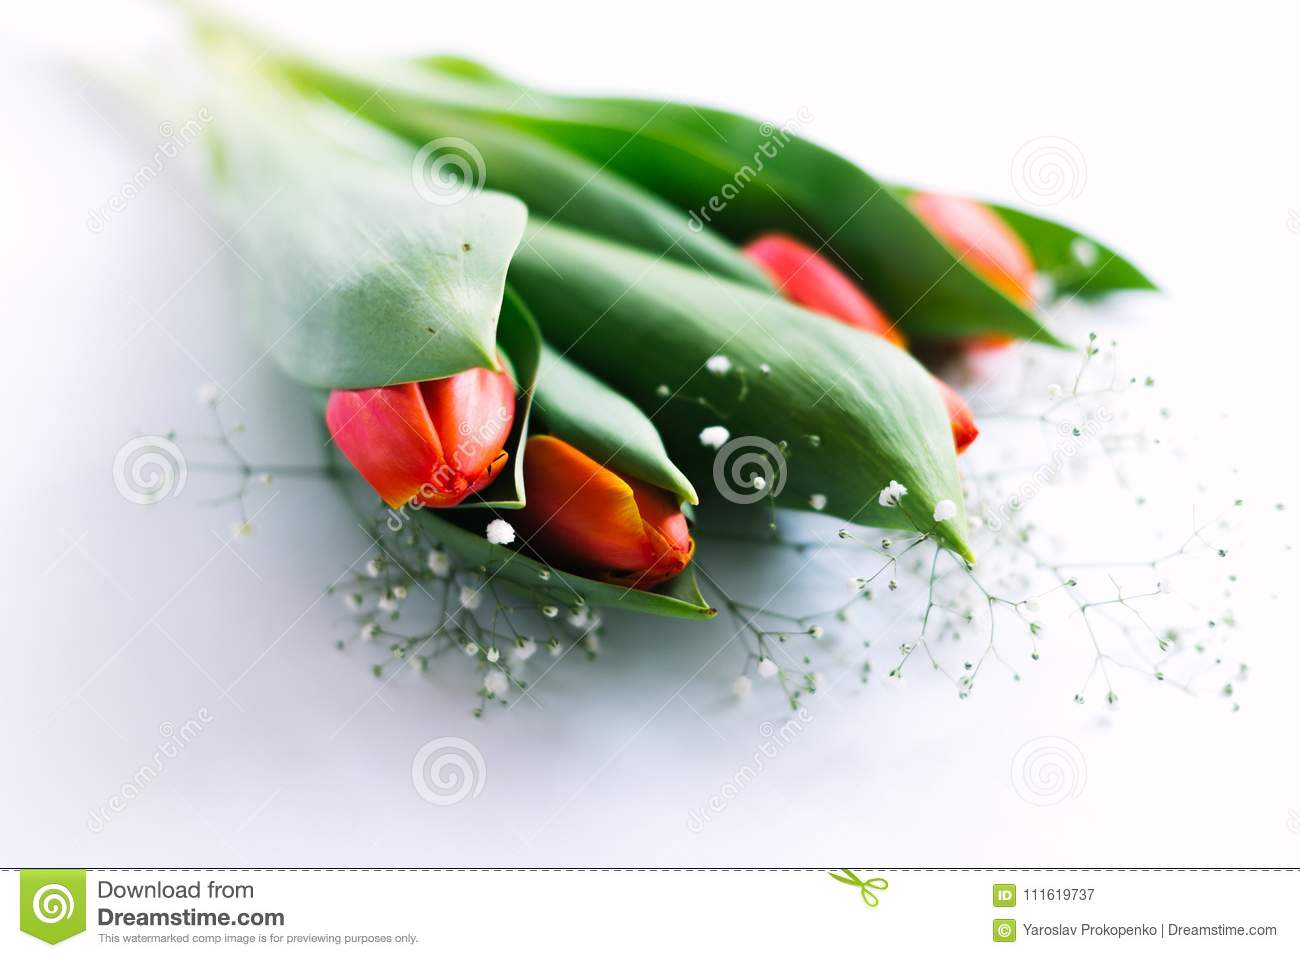 Blossoming tulips on a white background. Isolate, the concept of spring